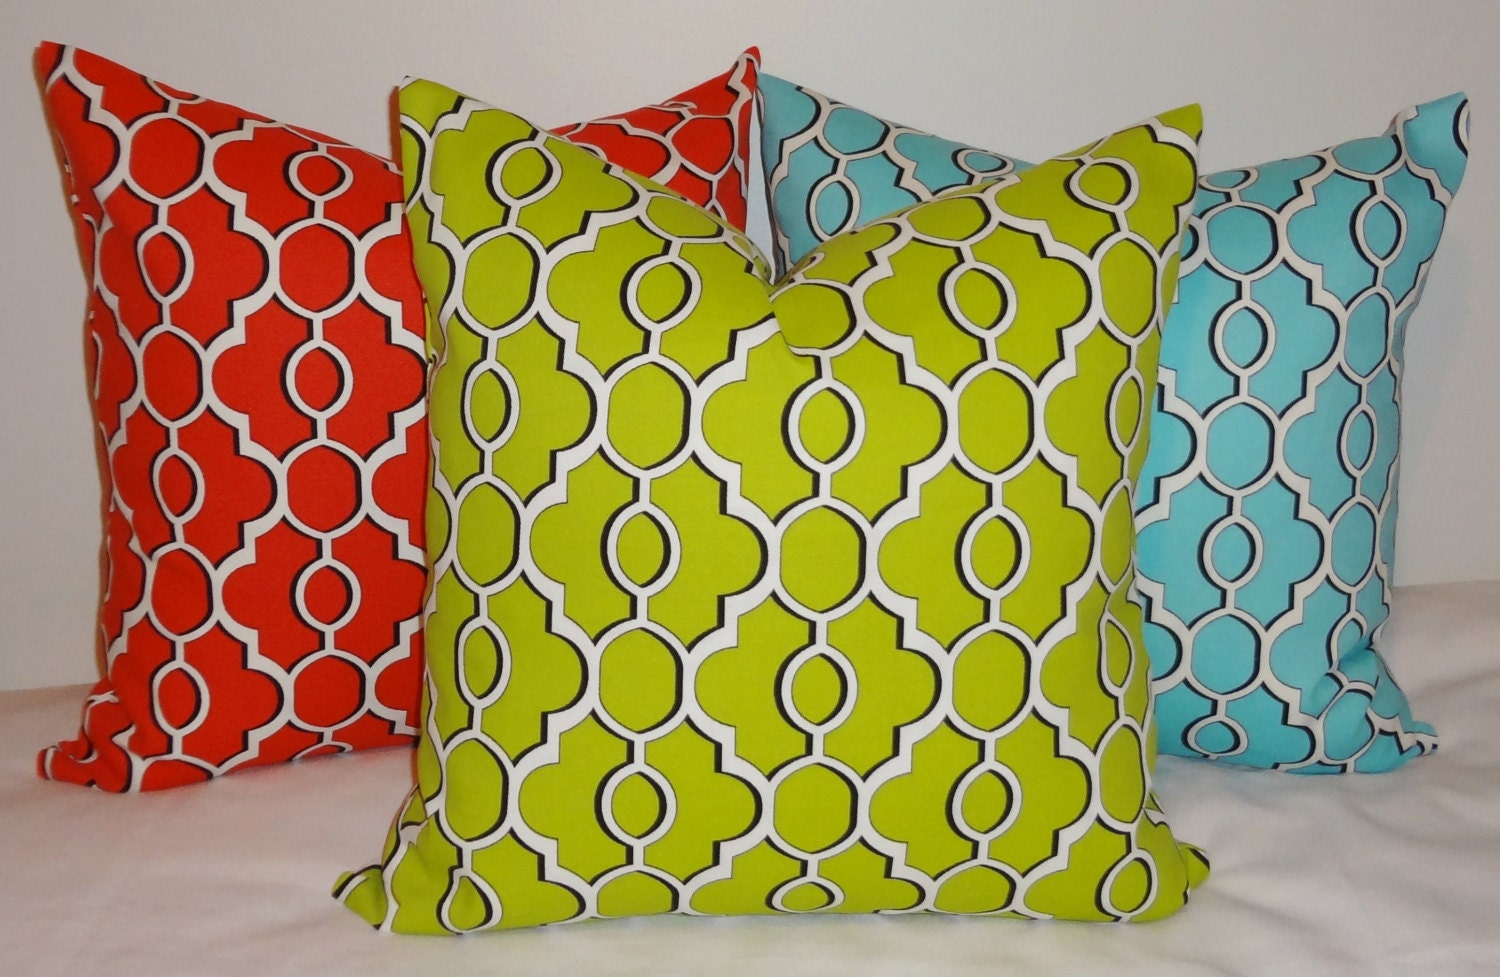 sale outdoor pillow cover lime green blue red by homeliving. Black Bedroom Furniture Sets. Home Design Ideas